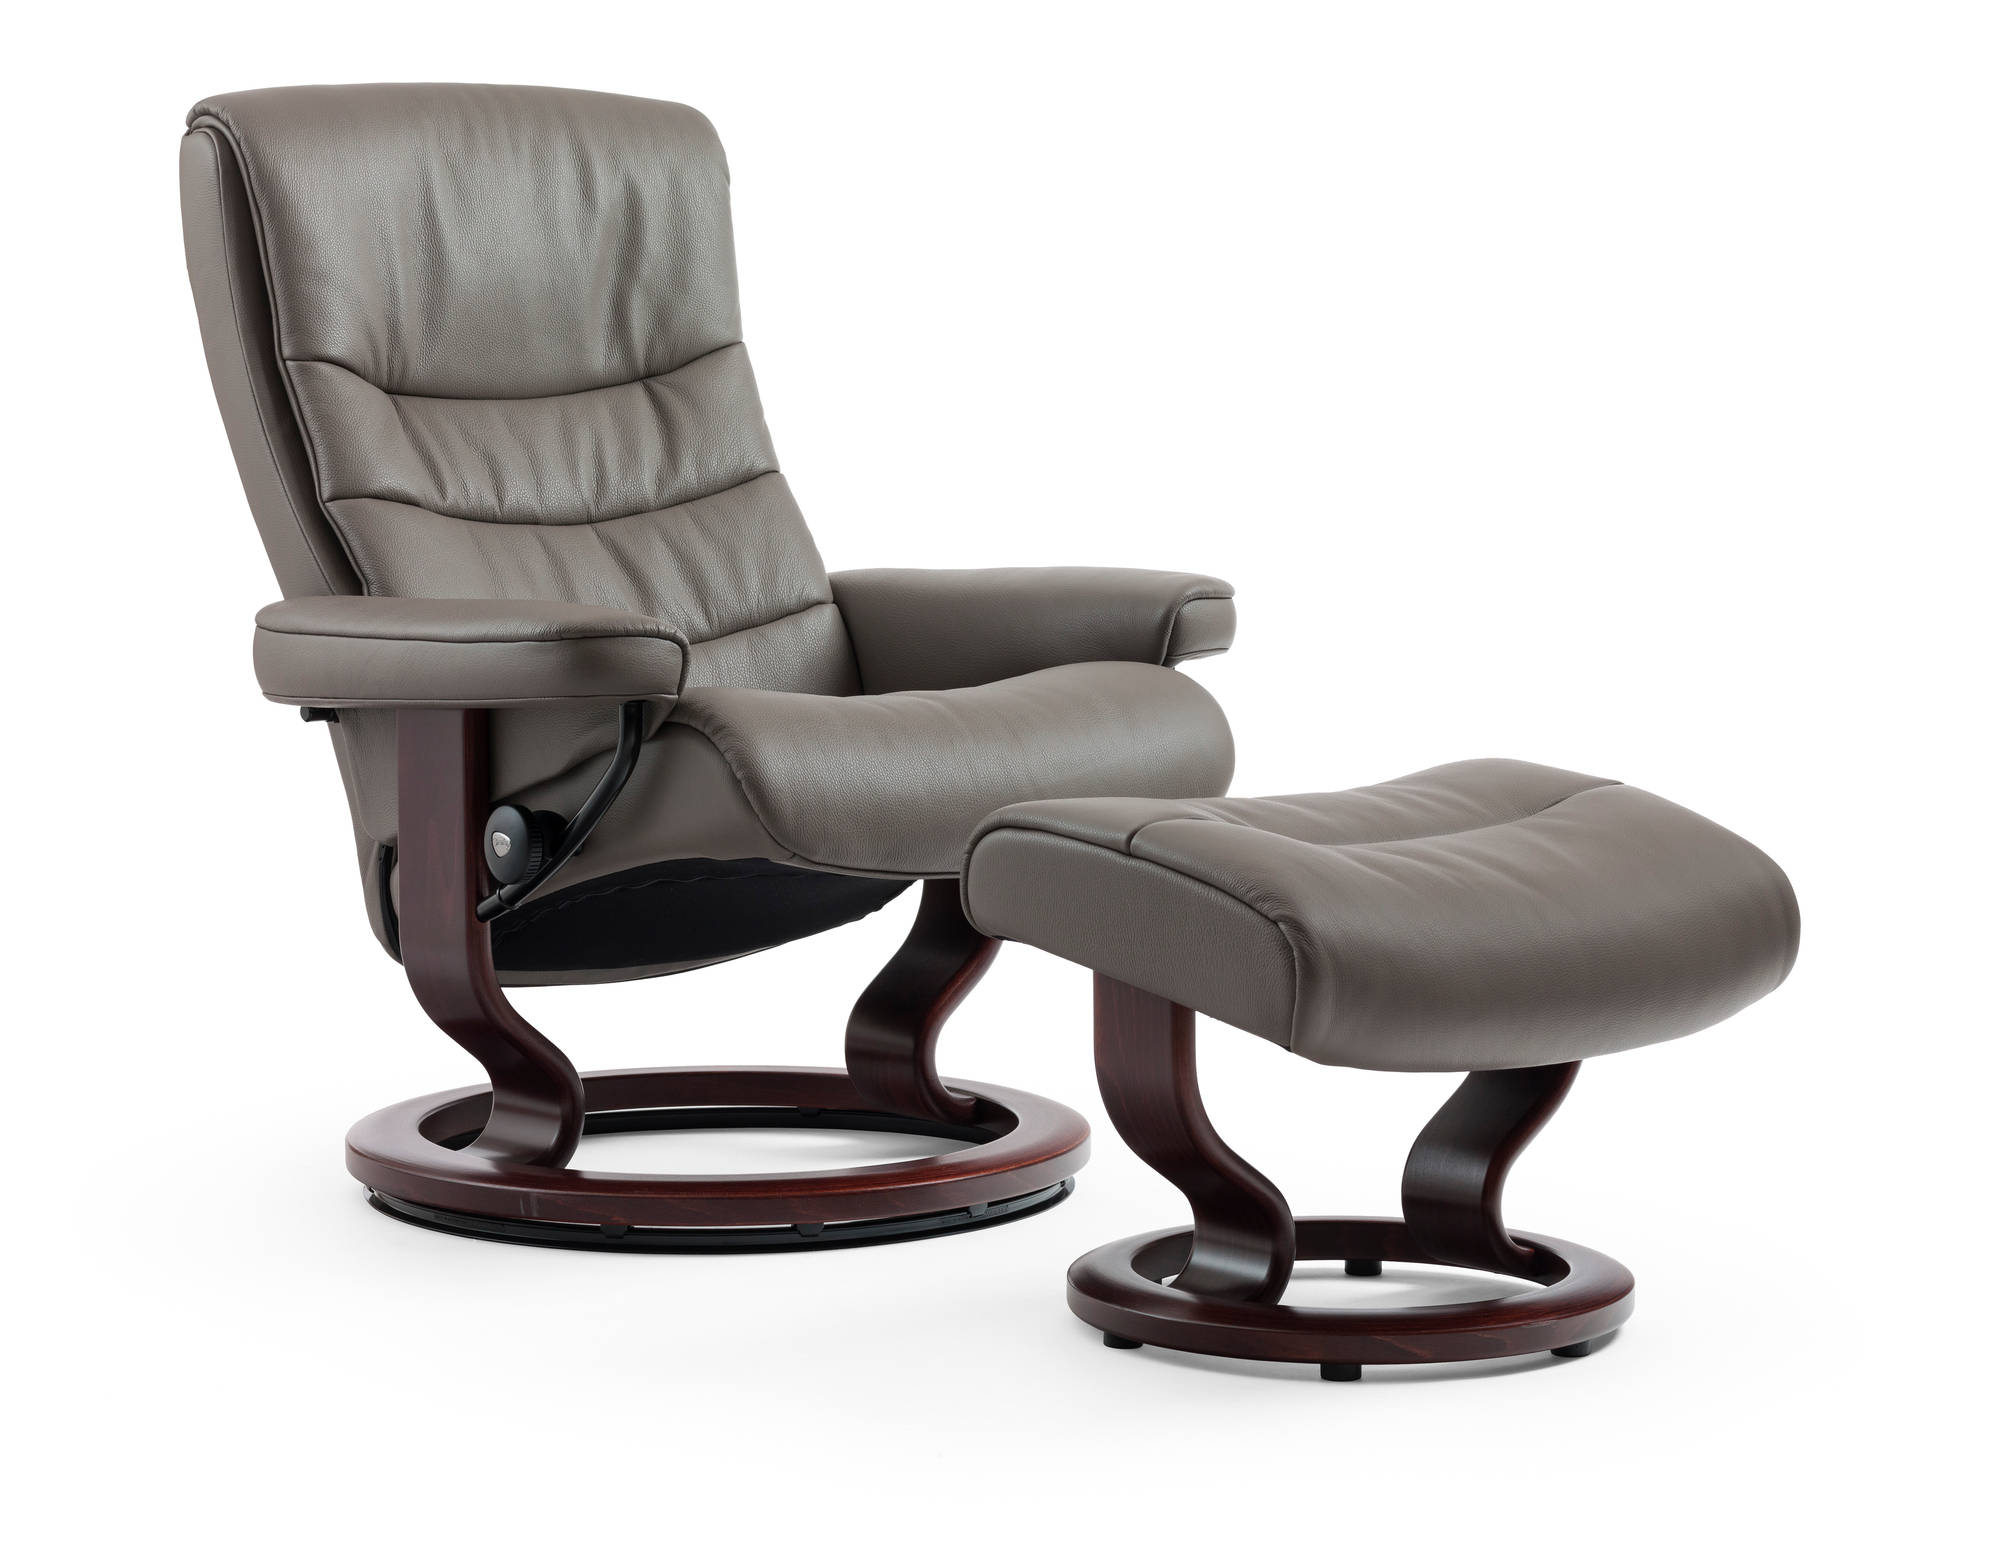 Nordic Recliner by Ekornes in Khaki Cori Leather